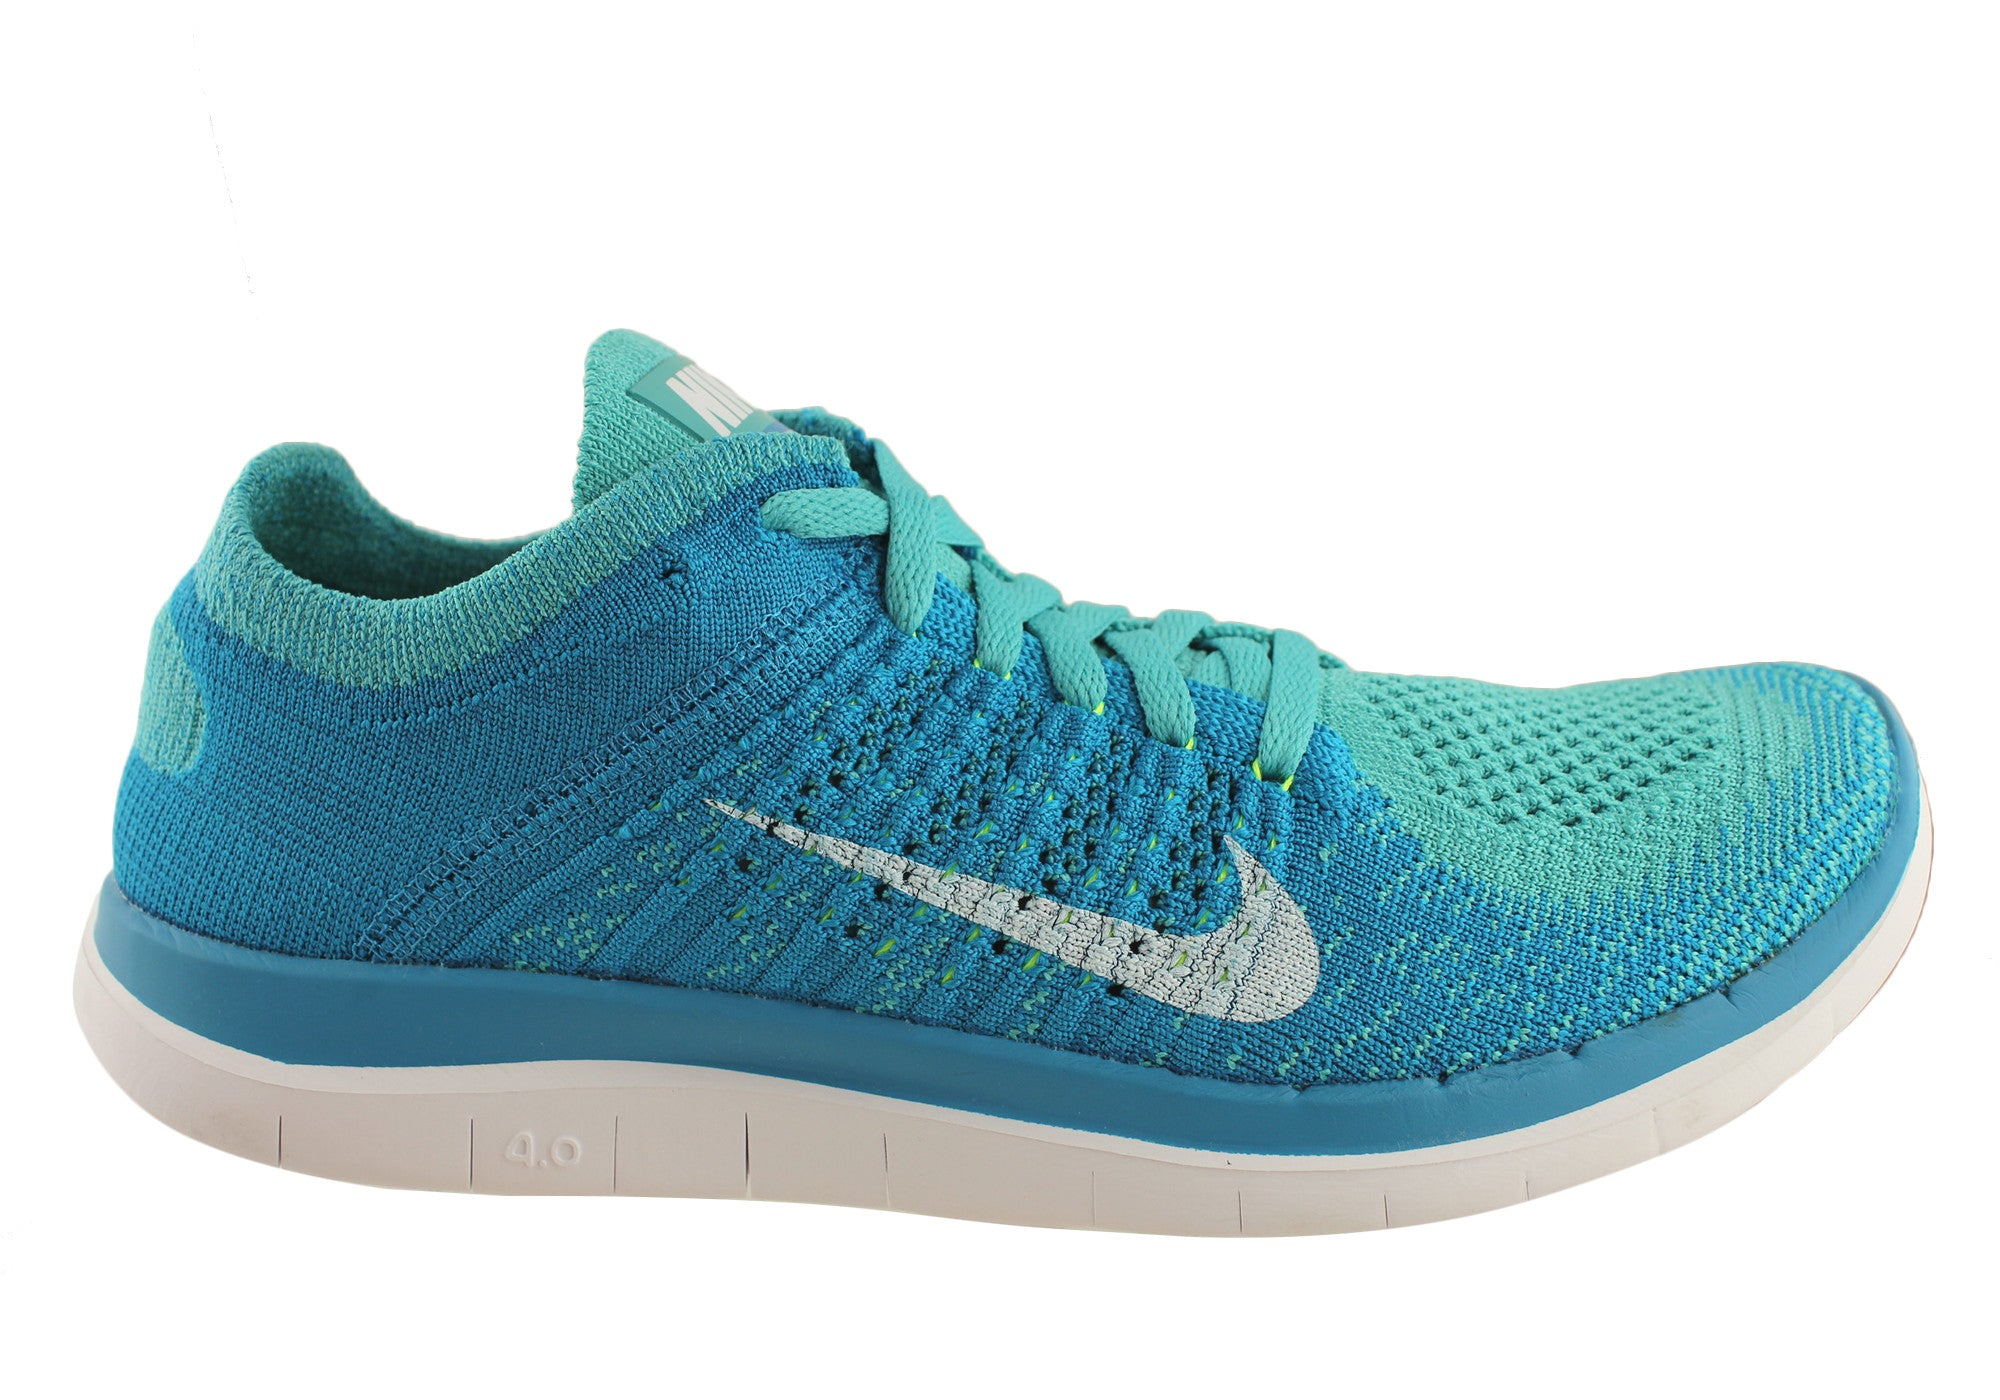 f9bd121ad47a5 NEW NIKE FREE FLYKNIT 4.0 WOMENS LIGHTWEIGHT RUNNING SHOES